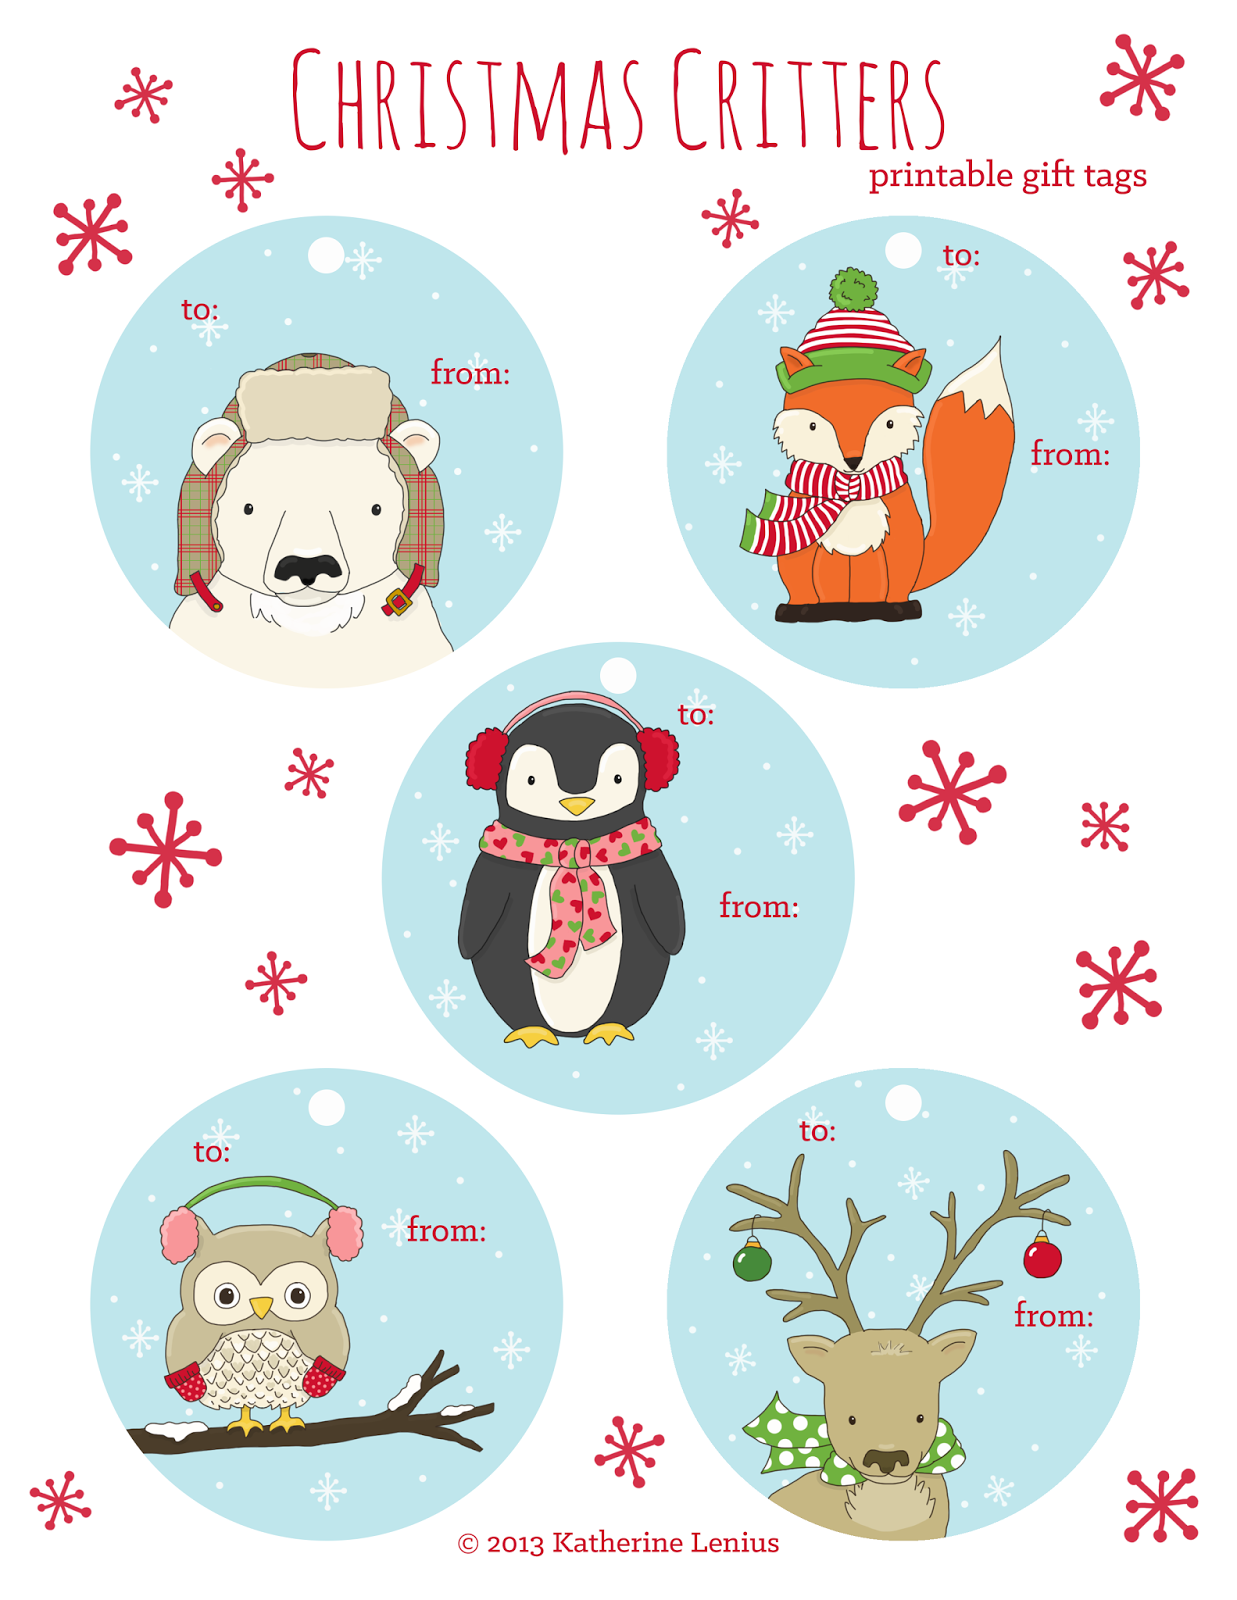 Katie's Sketchbook: Christmas Critters: Printable Gift Tags